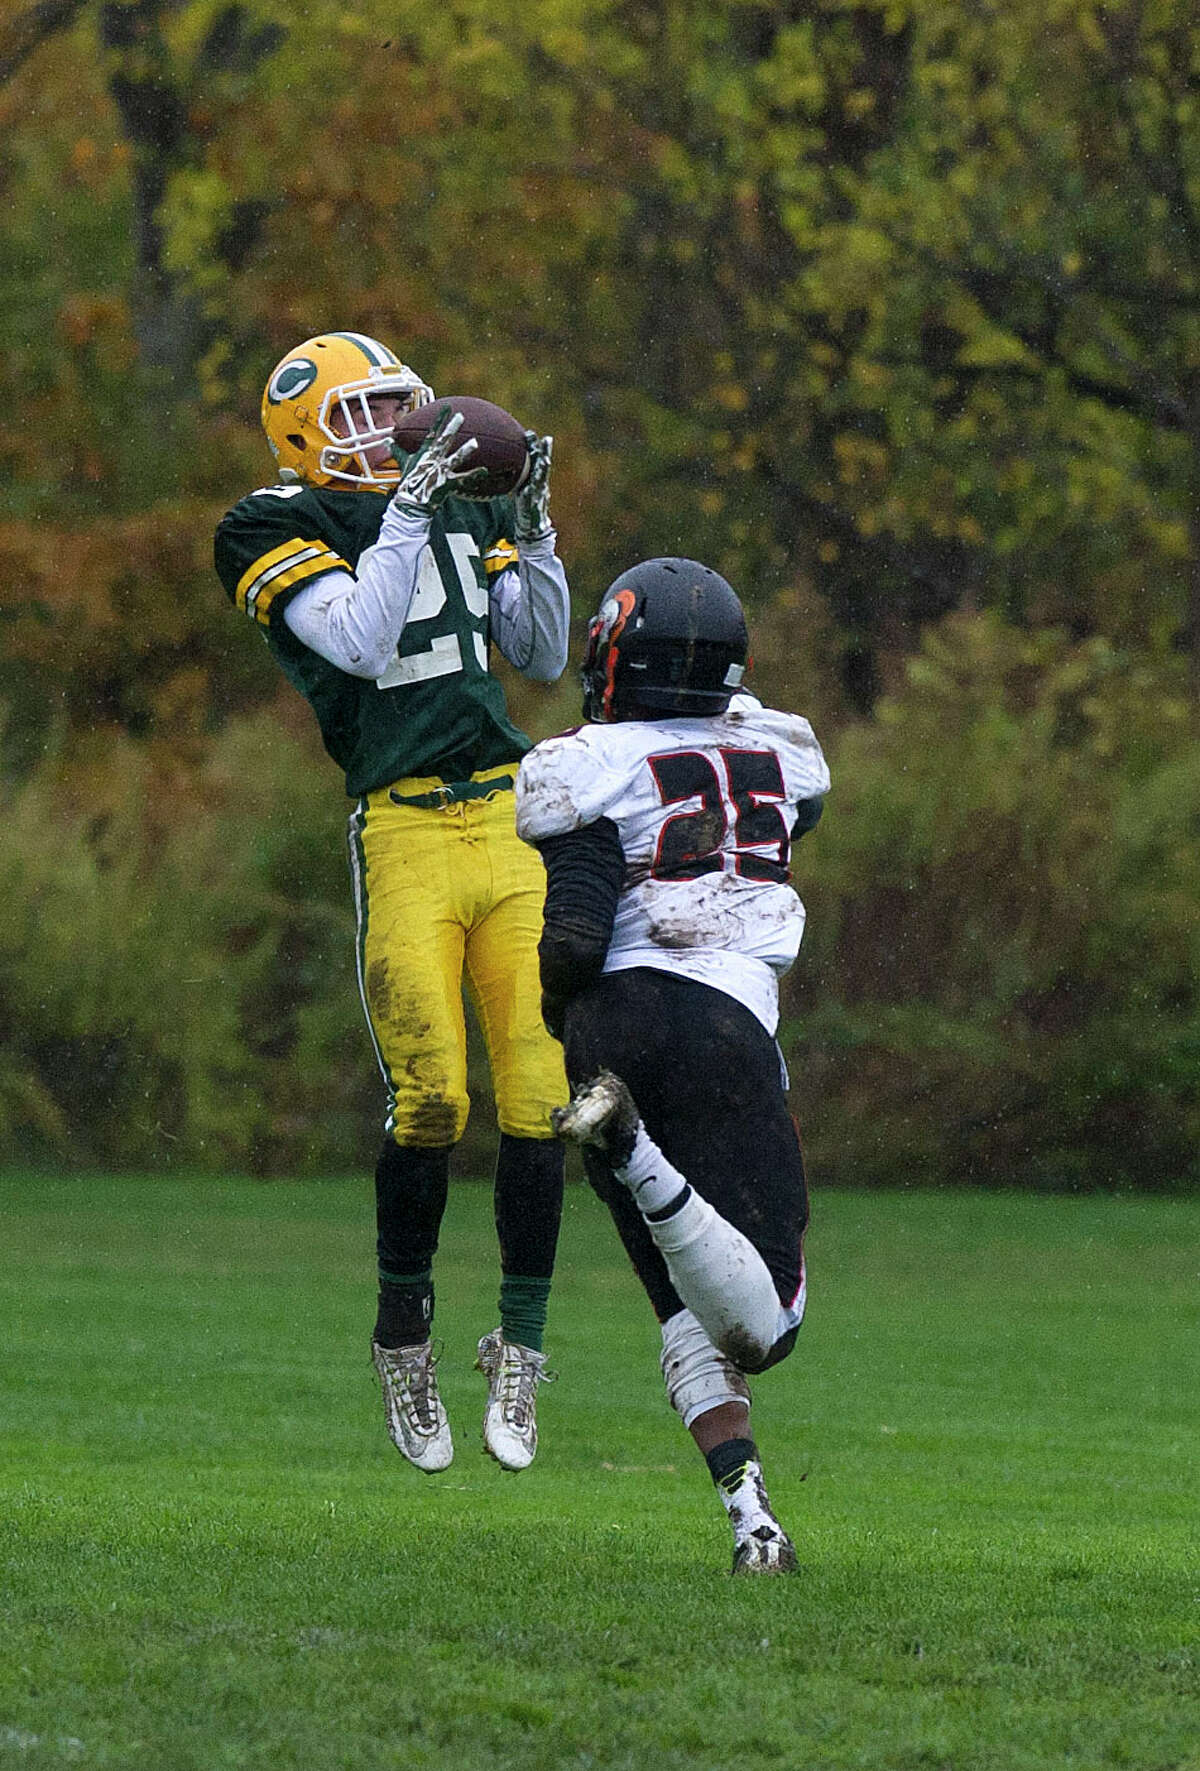 Trinity Catholic's Sam Ruzzi makes a catch for a touchdown during Saturday's football game against Stamford at Trinity Catholic High School on November 1, 2014.